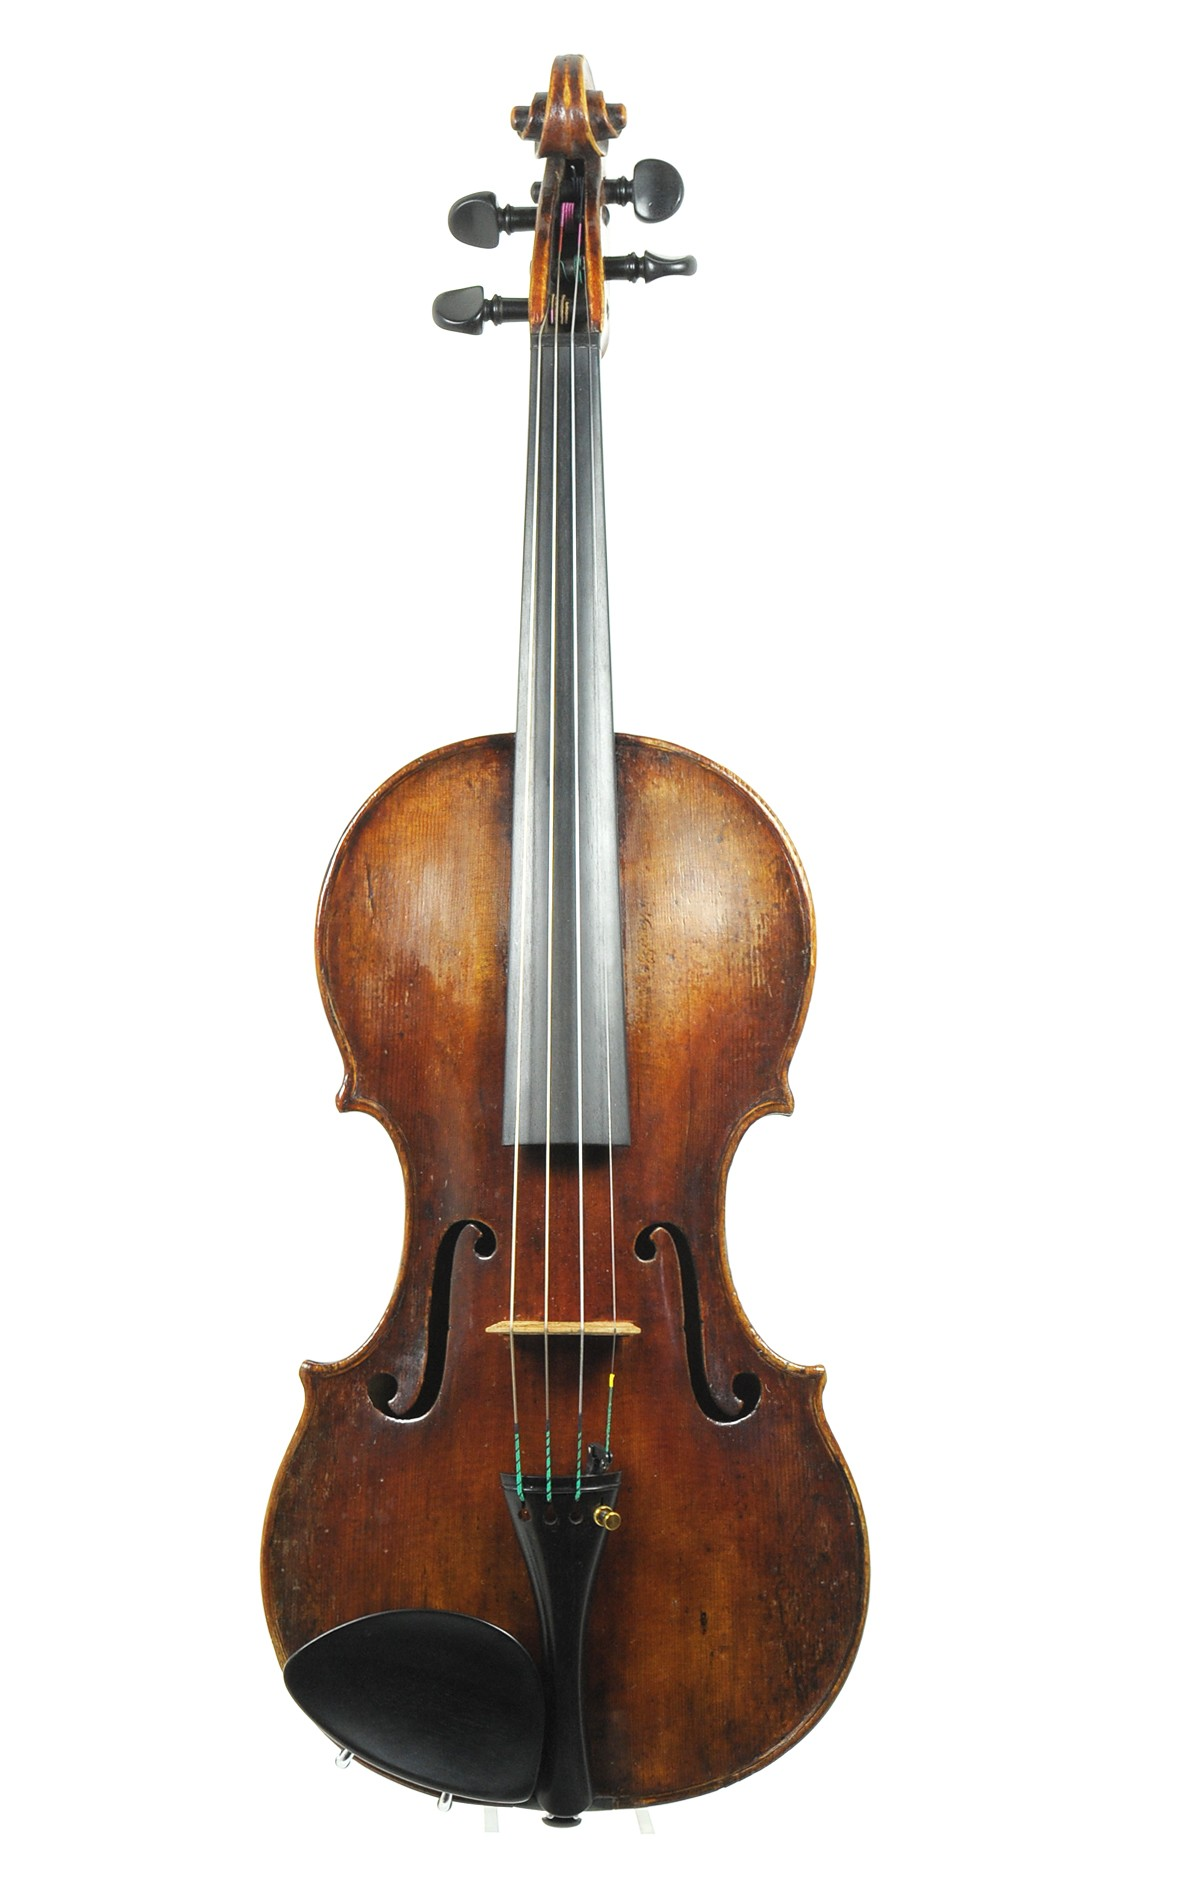 Mittenwald master violin, early 19th century (certificate by Hieronymus Köstler)